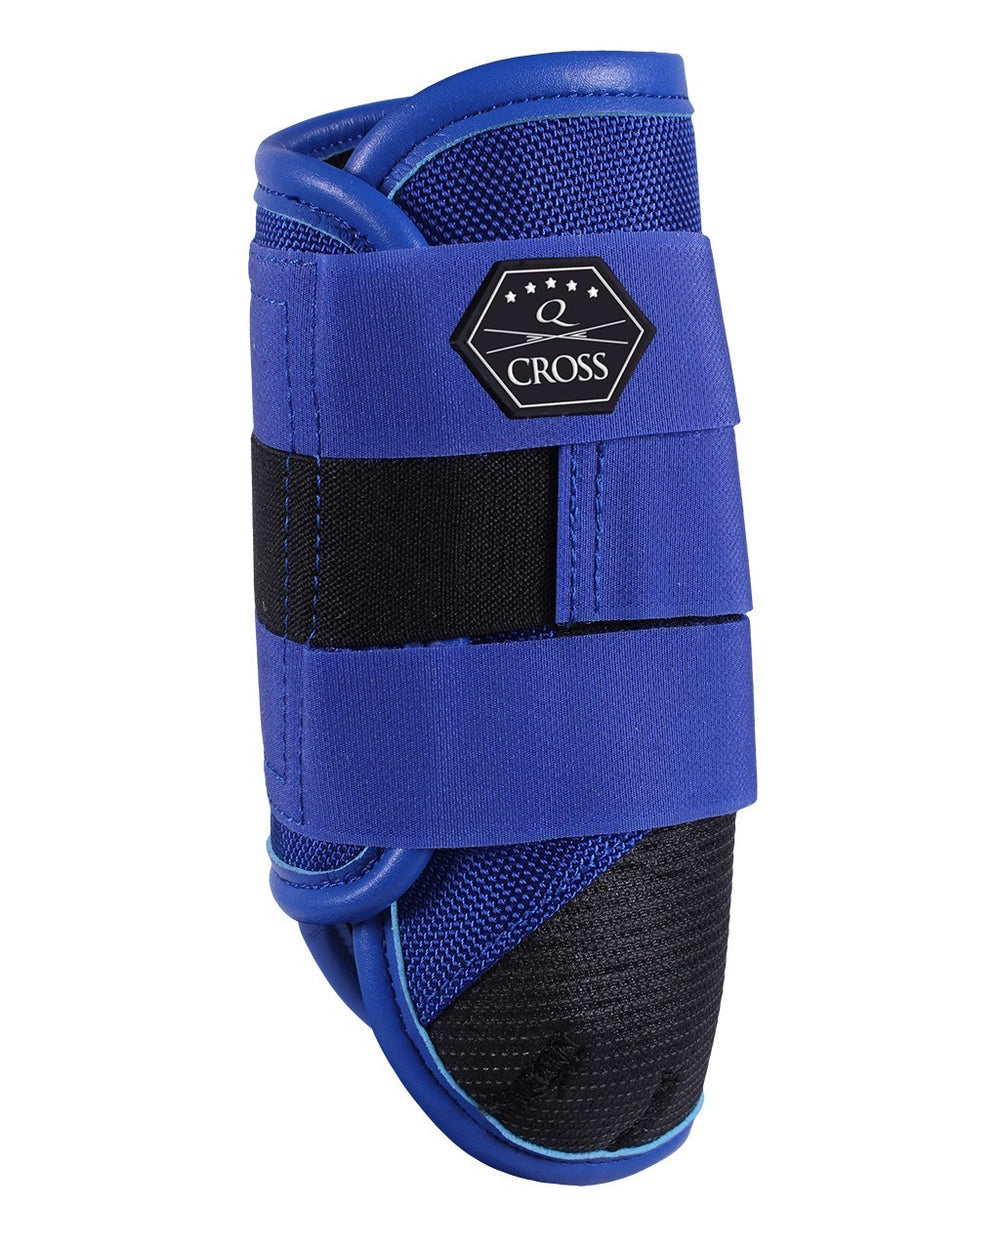 QHP Eventing boots front leg technical